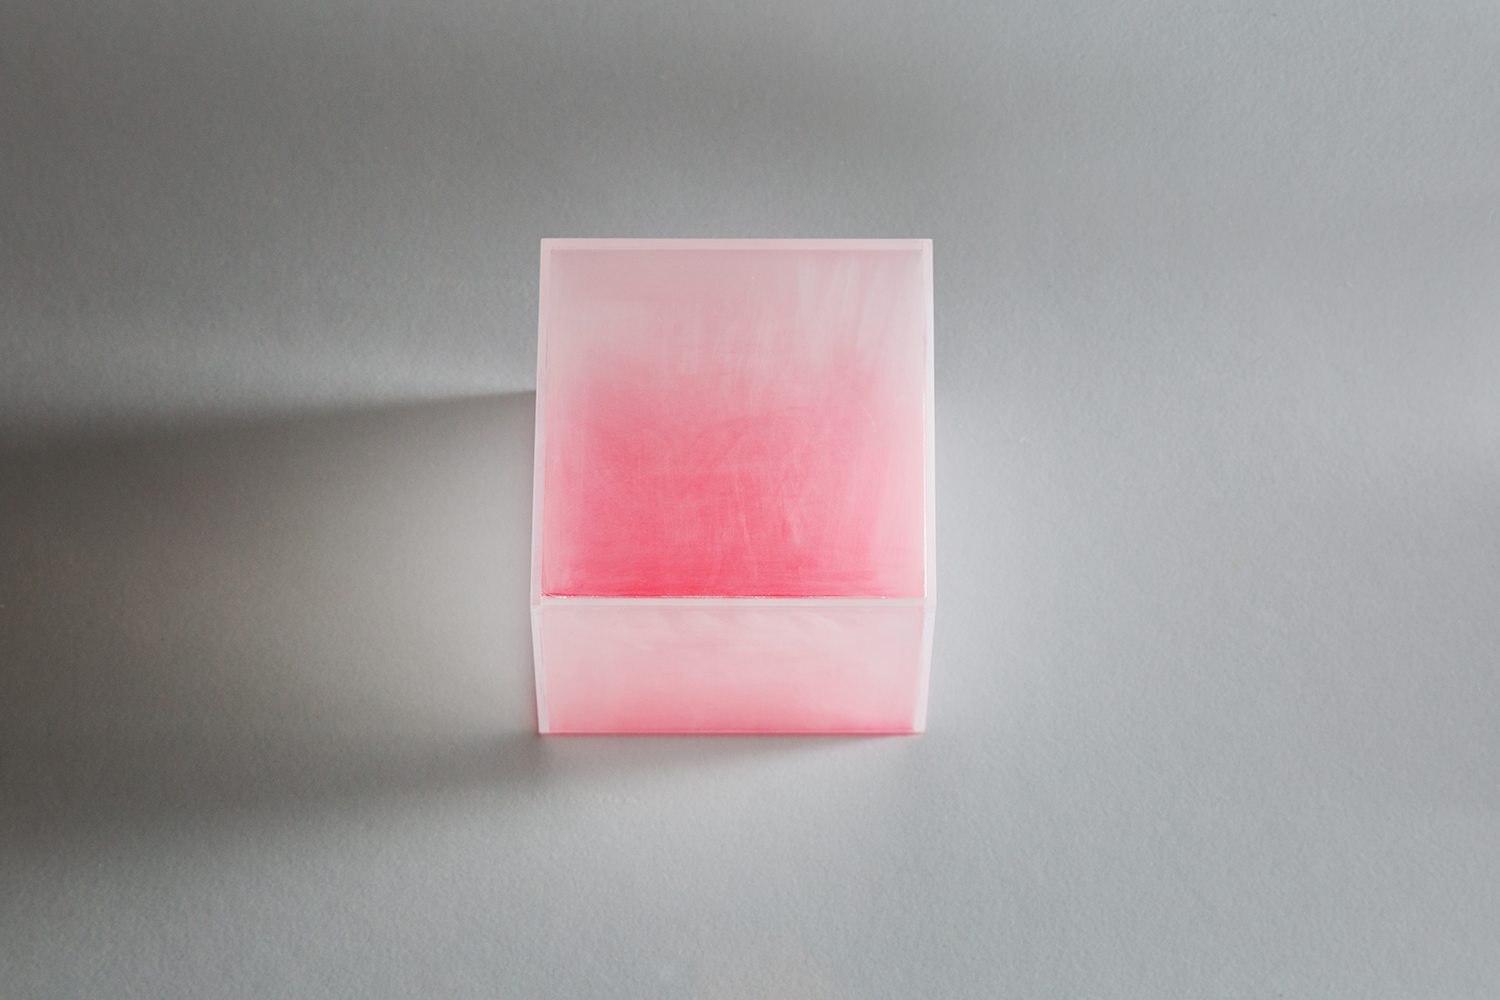 イロ|color|アクリル樹脂、蛍光塗料|acrylic acid resin, fluorescent paint|2010